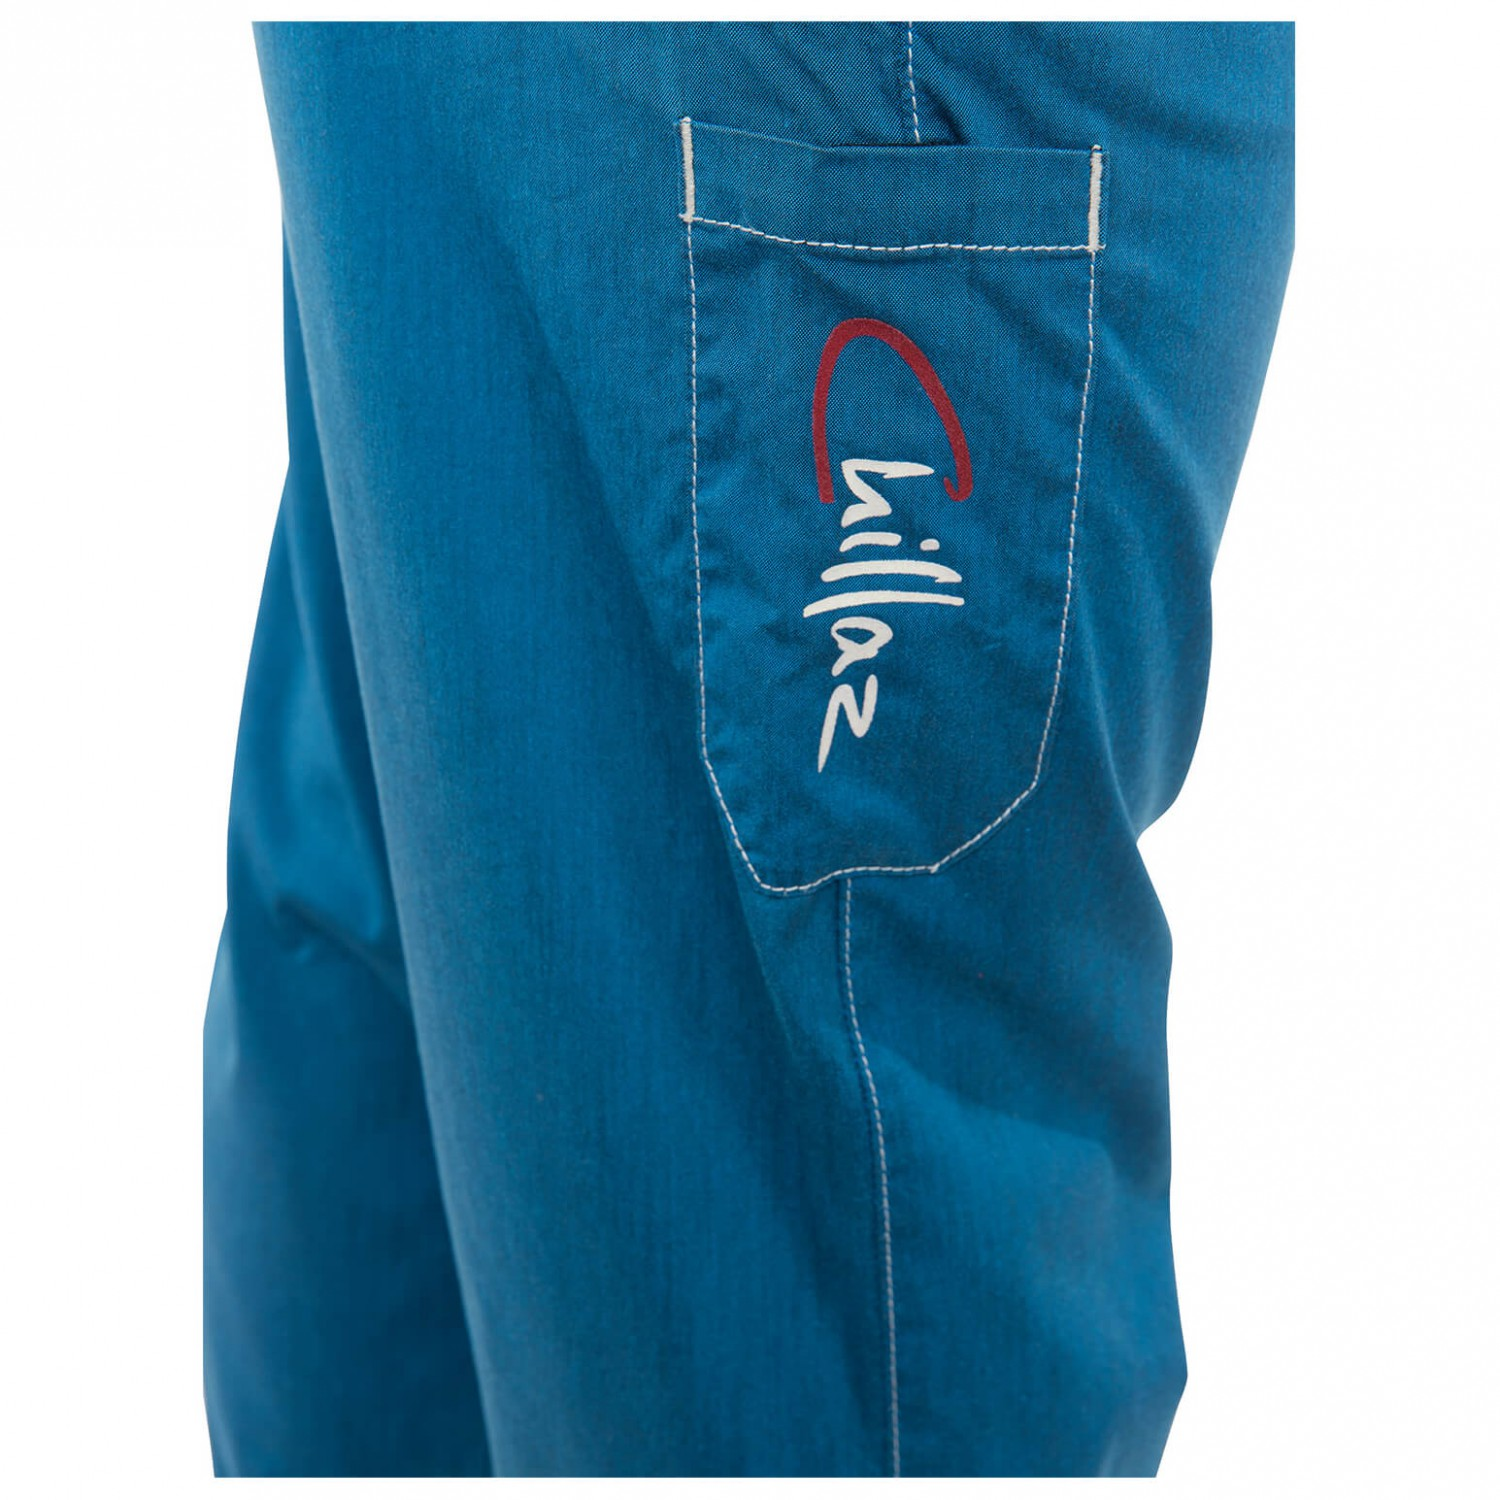 eafd08c247584f Chillaz Dani's Pant - Climbing trousers Men's | Buy online ...